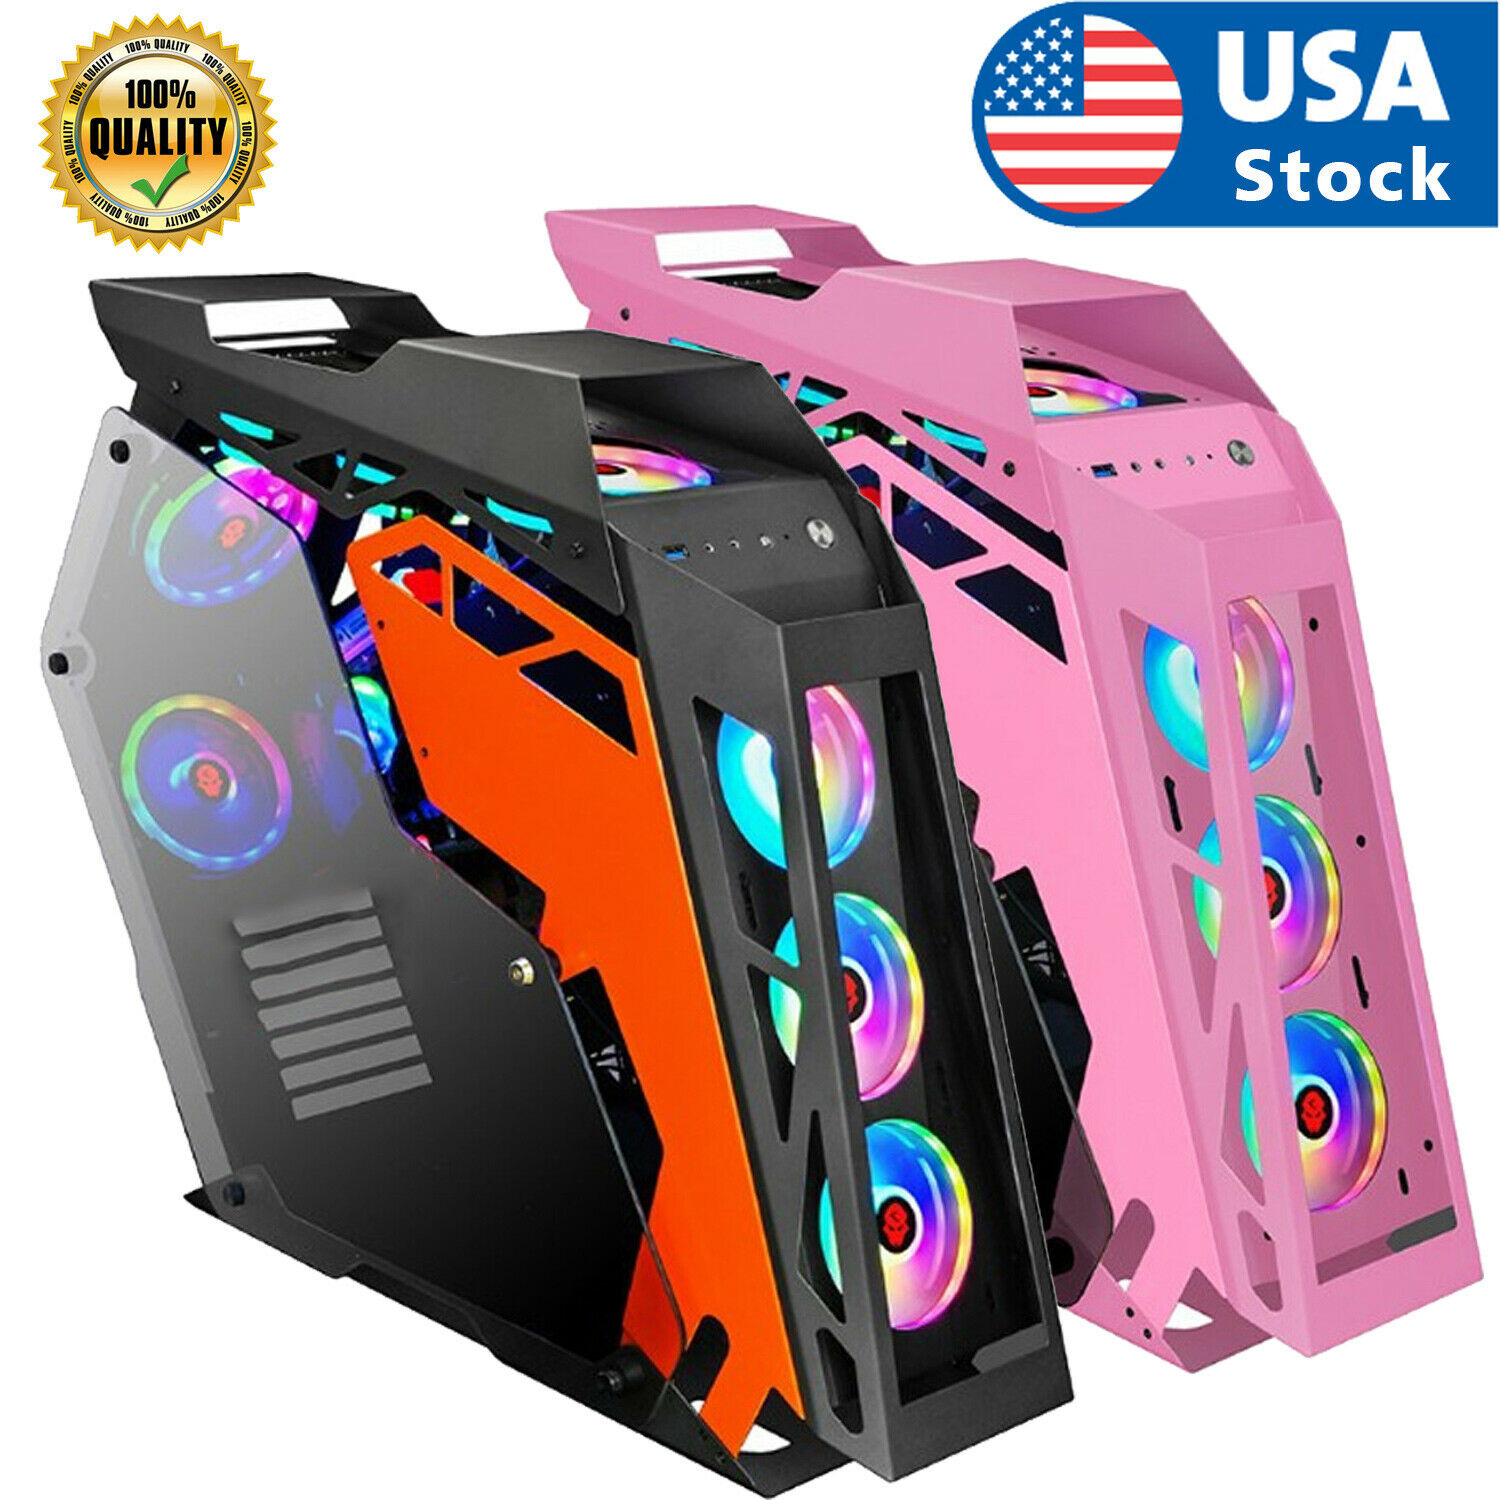 USA ATX/M-ATX Computer Gaming PC Case With Side Windows  with Tempered Glass Computer Cases